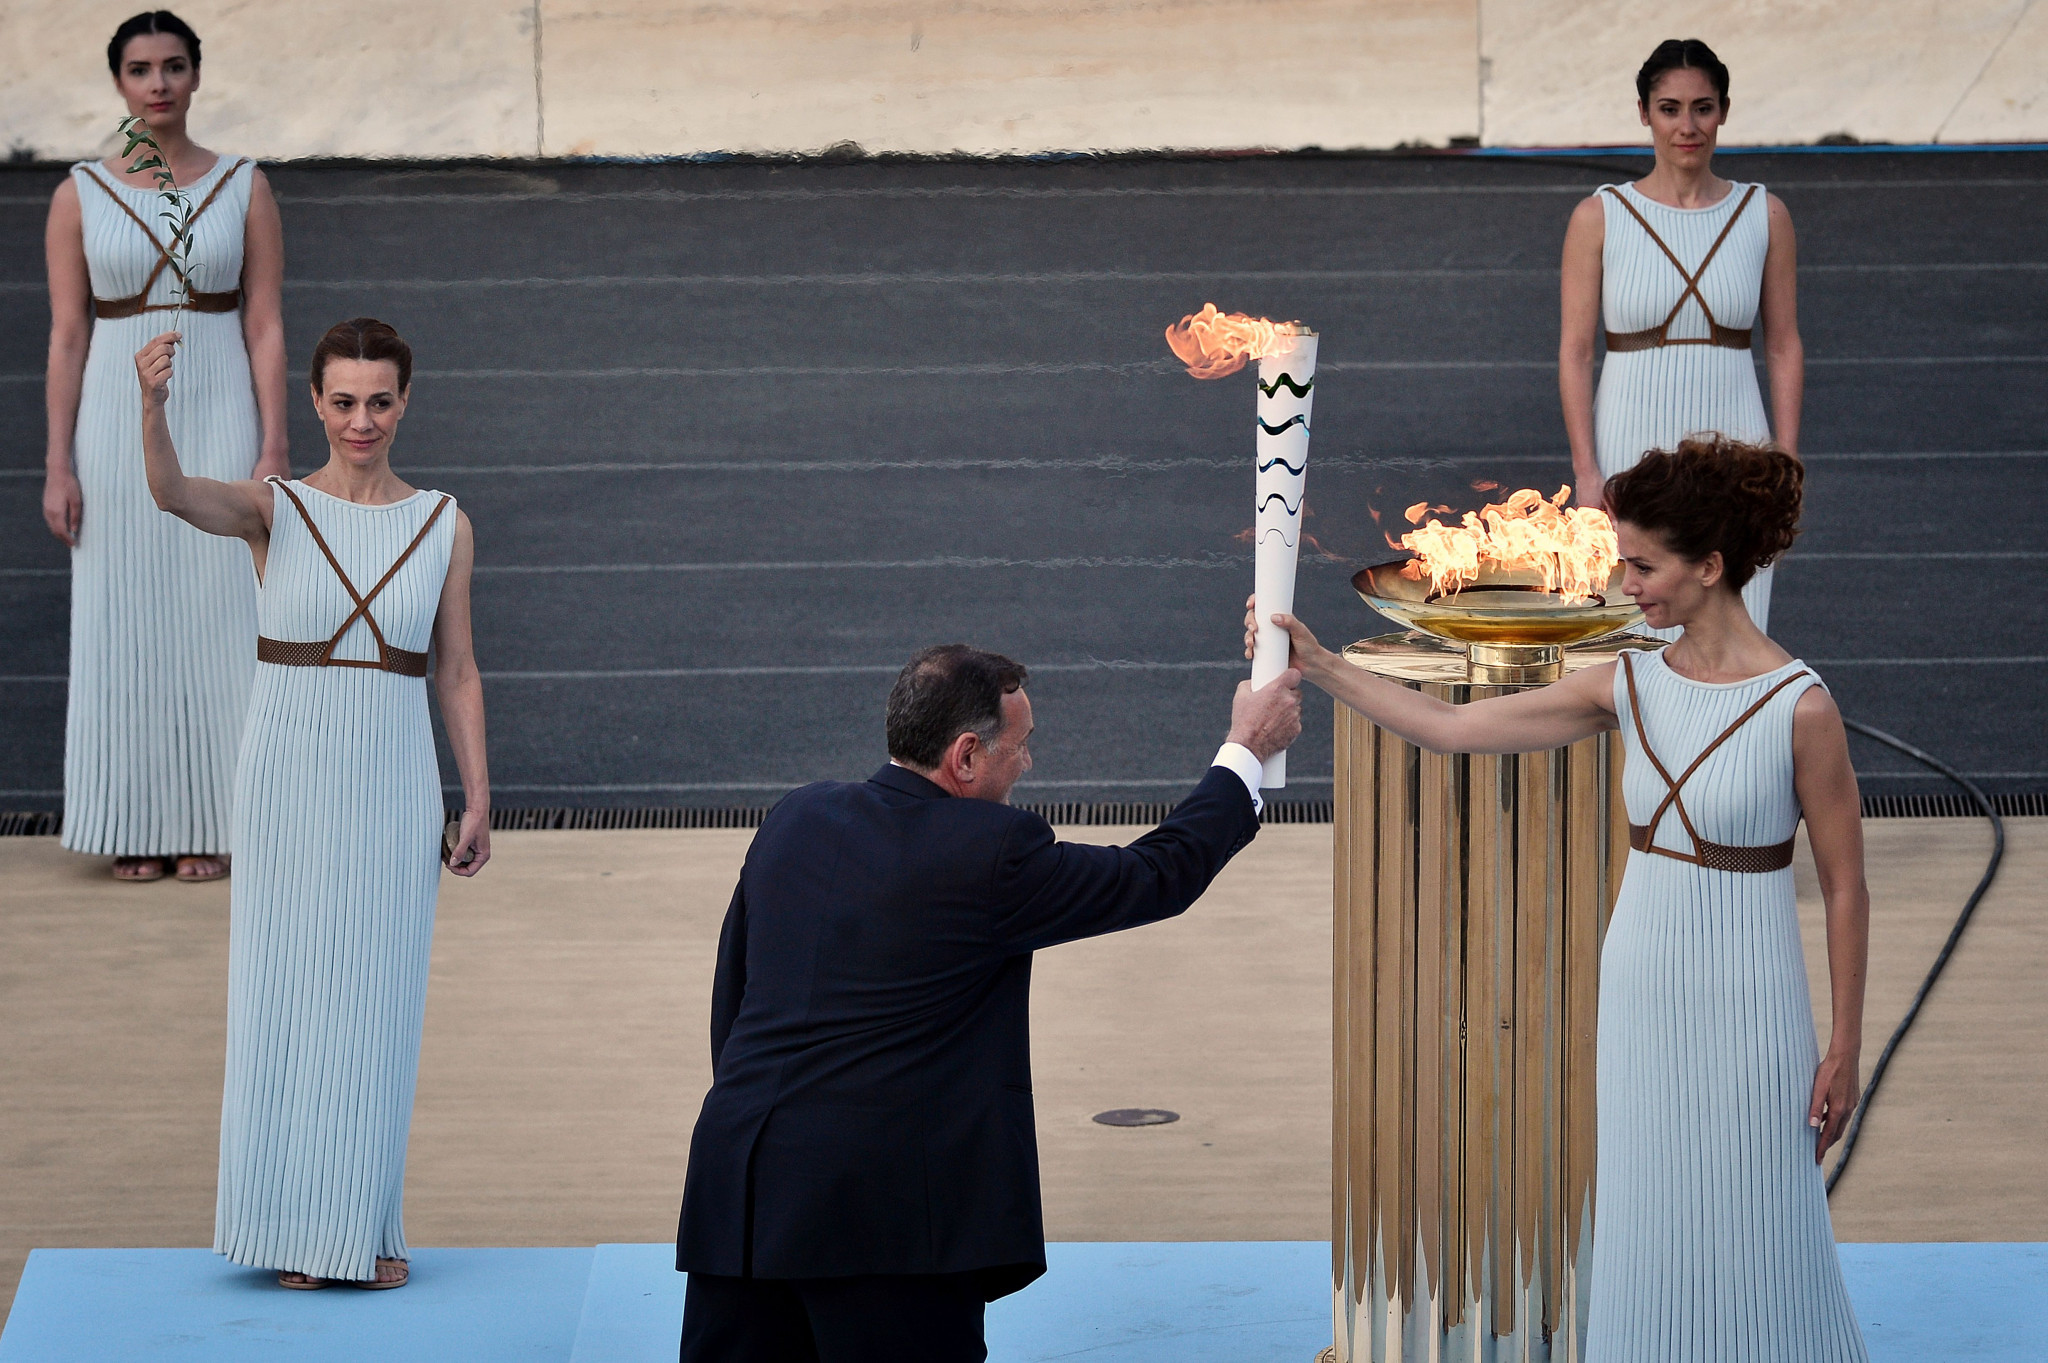 Tokyo 2020 Torch Relay organisers consult with Greek health agencies due to coronavirus worries